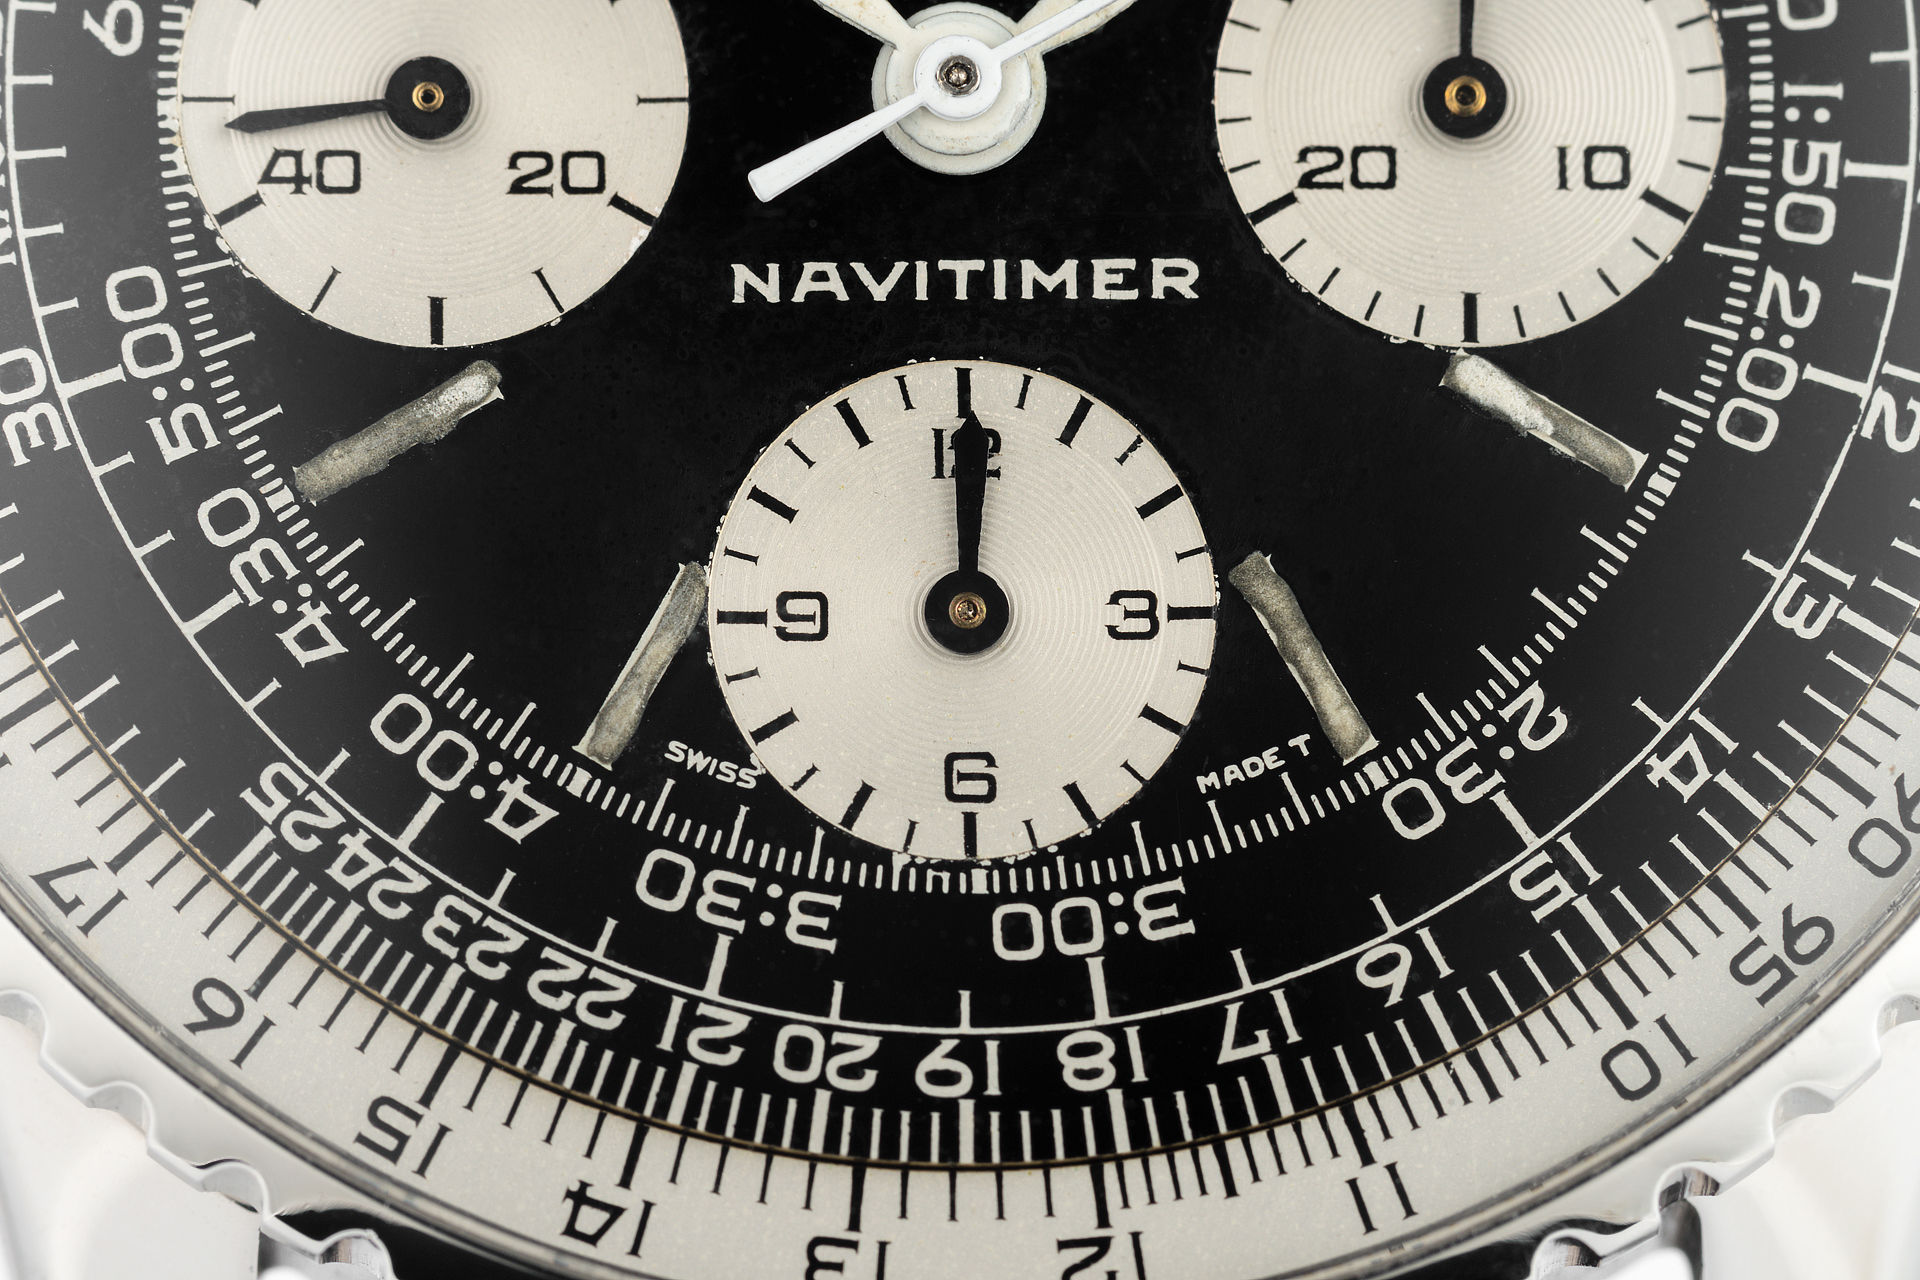 Pilot Twin Planes Ref 806 Breitling Navitimer Watches The